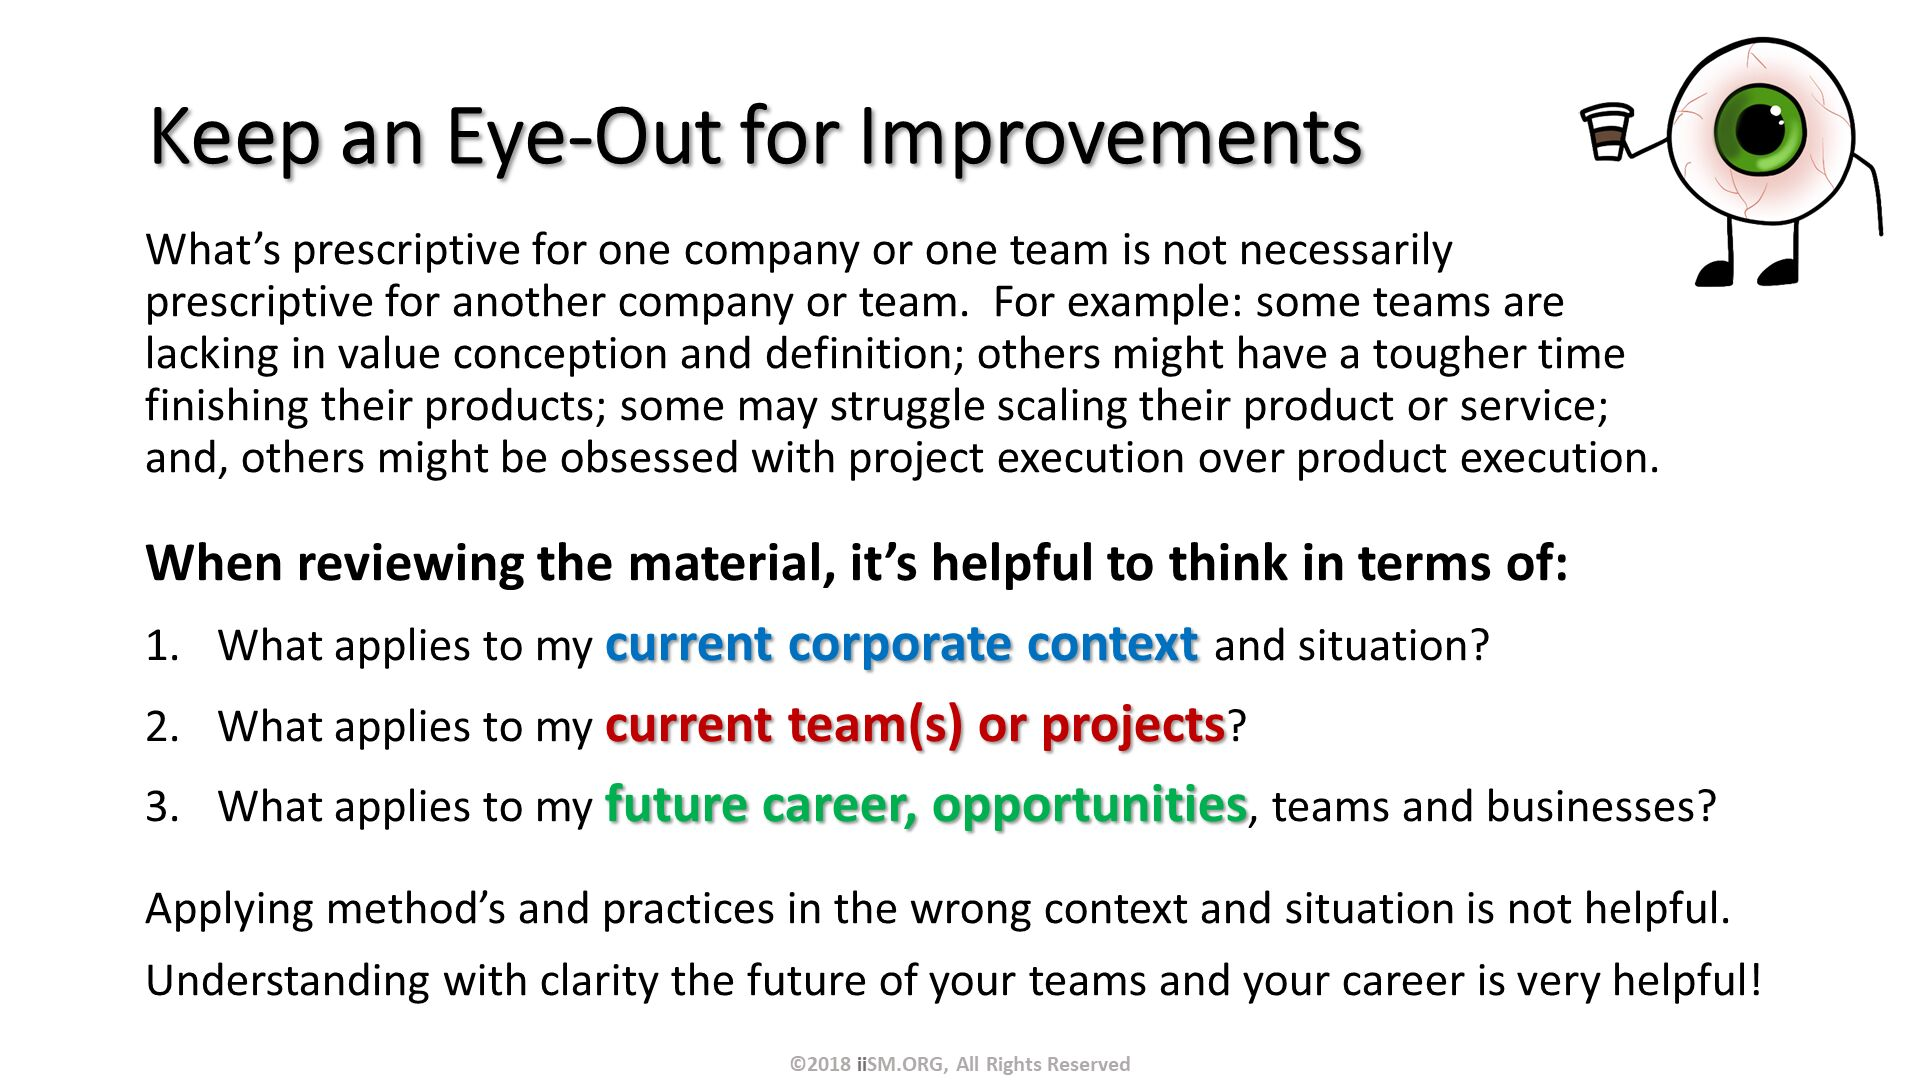 Keep an Eye-Out for Improvements. What's prescriptive for one company or one team is not necessarily prescriptive for another company or team.  For example: some teams are lacking in value conception and definition; others might have a tougher time finishing their products; some may struggle scaling their product or service; and, others might be obsessed with project execution over product execution. . When reviewing the material, it's helpful to think in terms of: What applies to my current corporate context and situation? What applies to my current team(s) or projects? What applies to my future career, opportunities, teams and businesses? Applying method's and practices in the wrong context and situation is not helpful. Understanding with clarity the future of your teams and your career is very helpful!. ©2018 iiSM.ORG, All Rights Reserved.